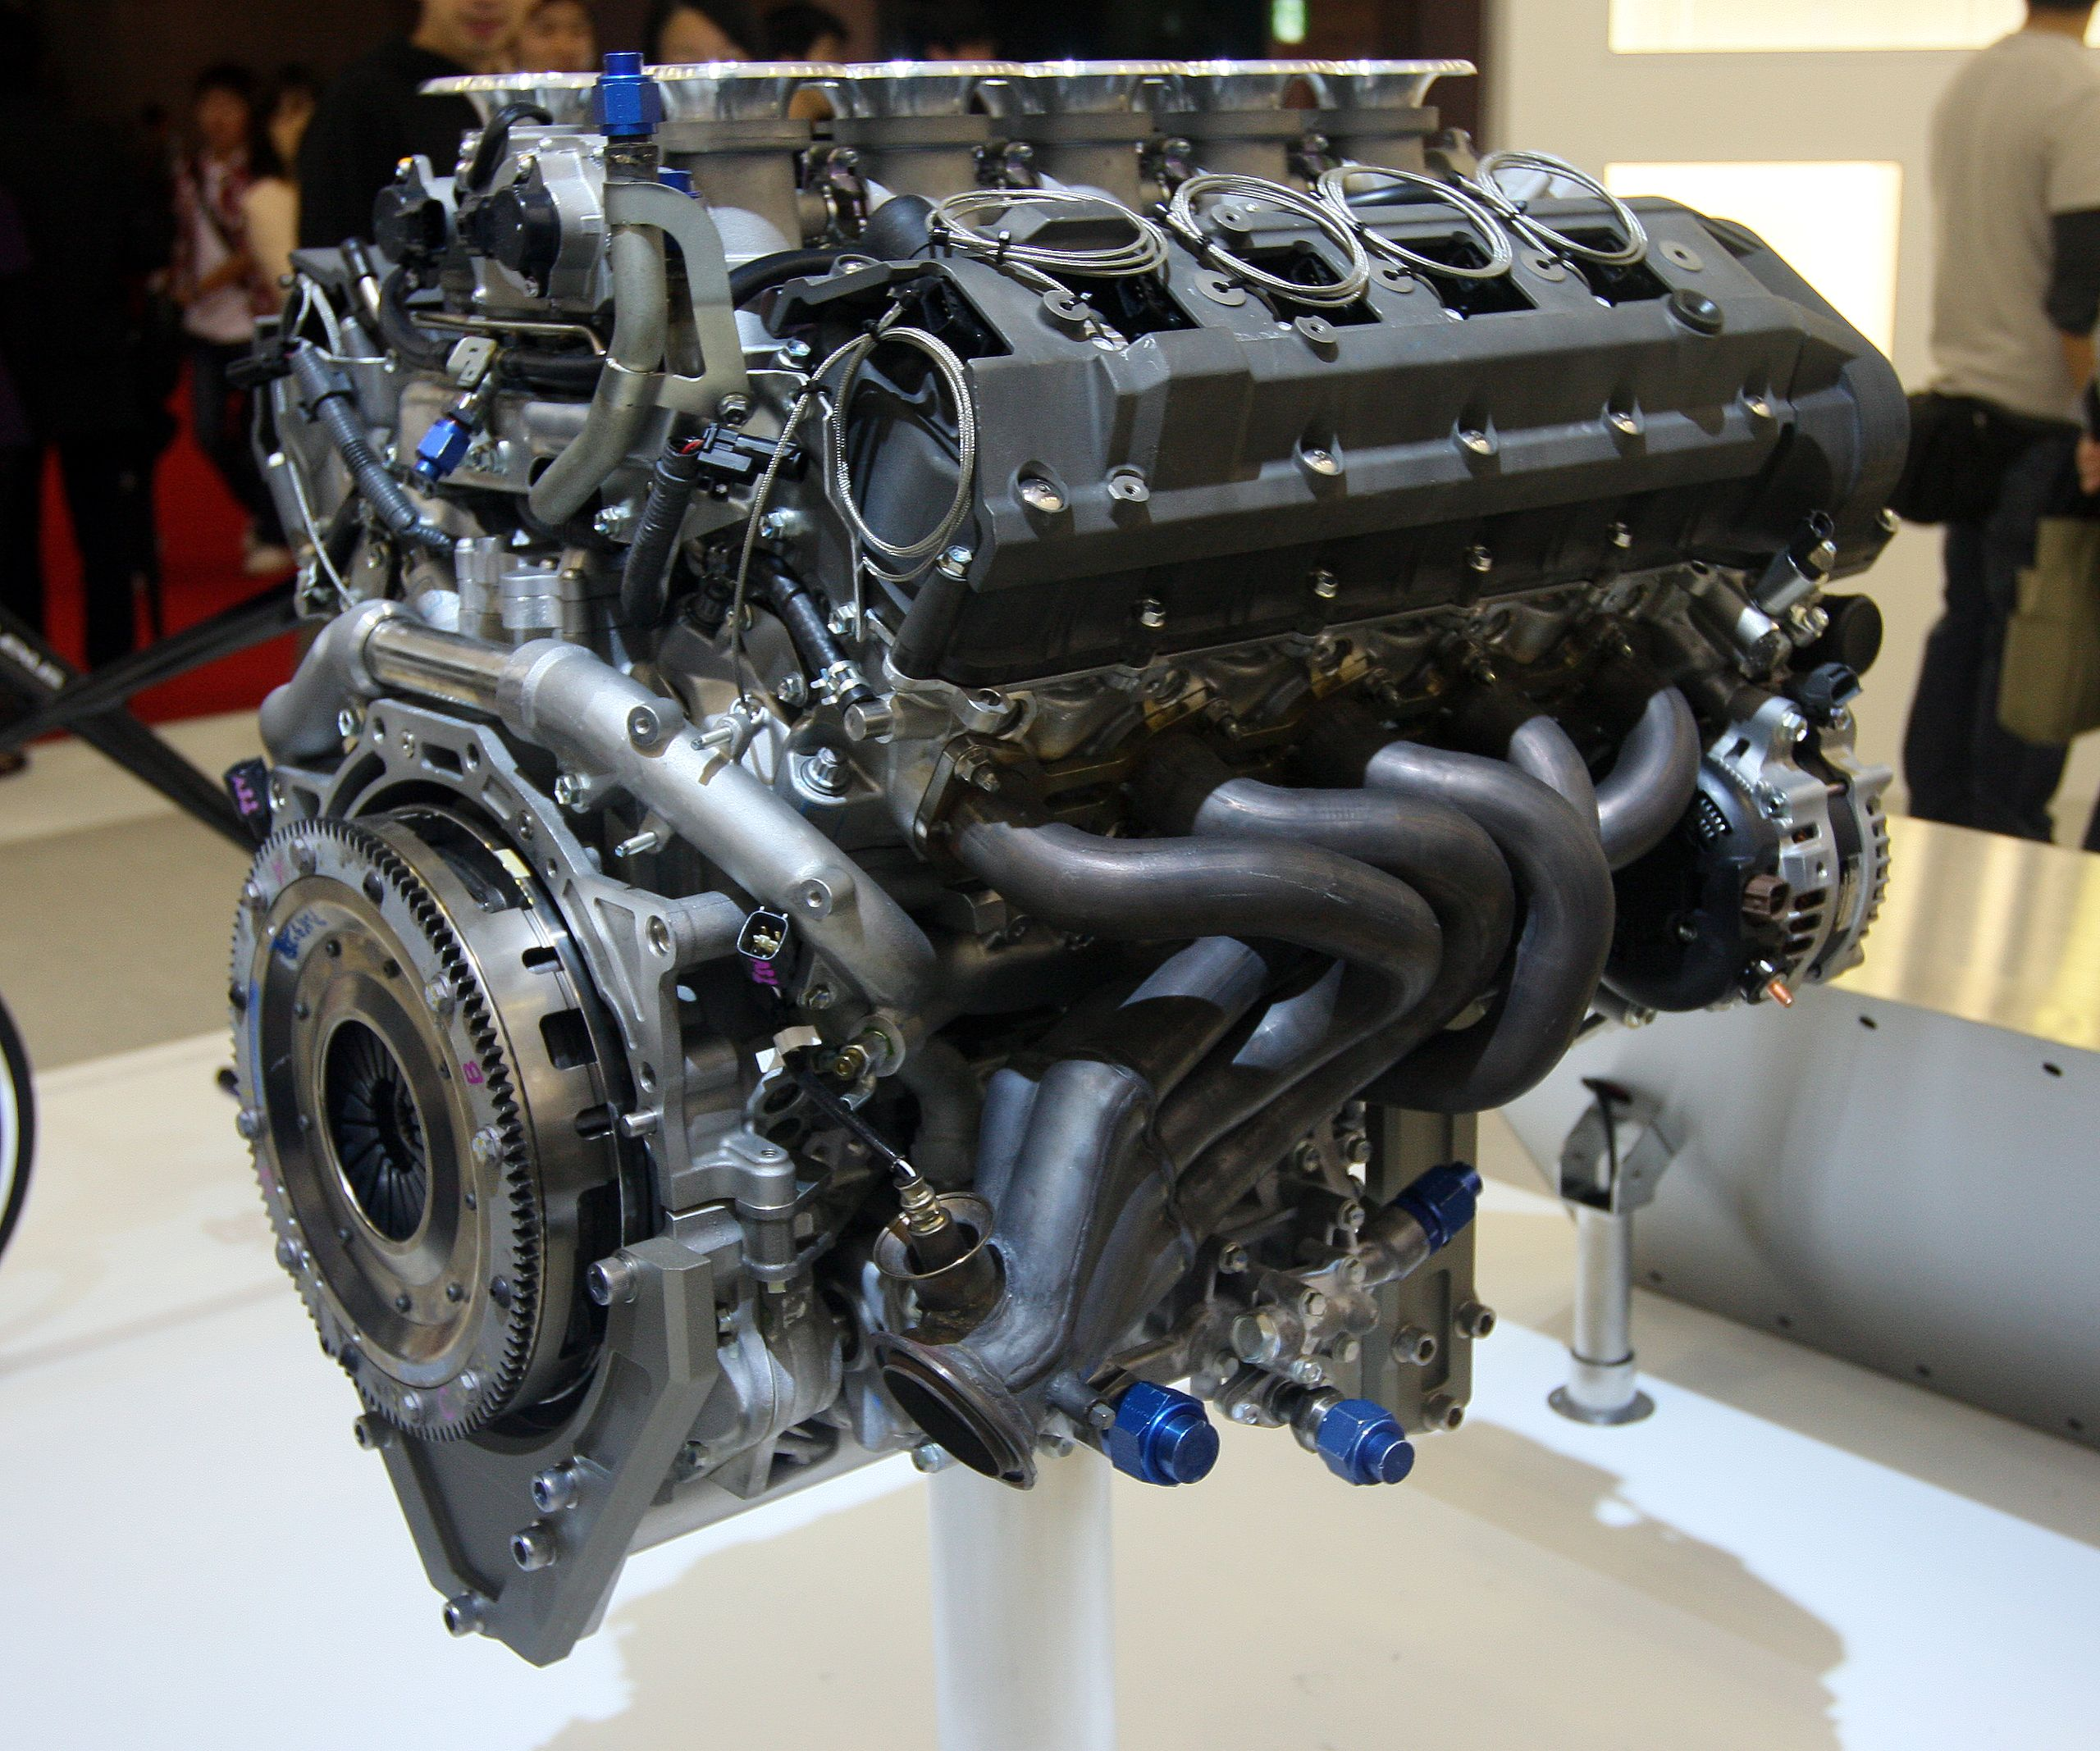 The 10 Best Engines Of The Last 20 Years | Engine, Lexus LFA and Cars